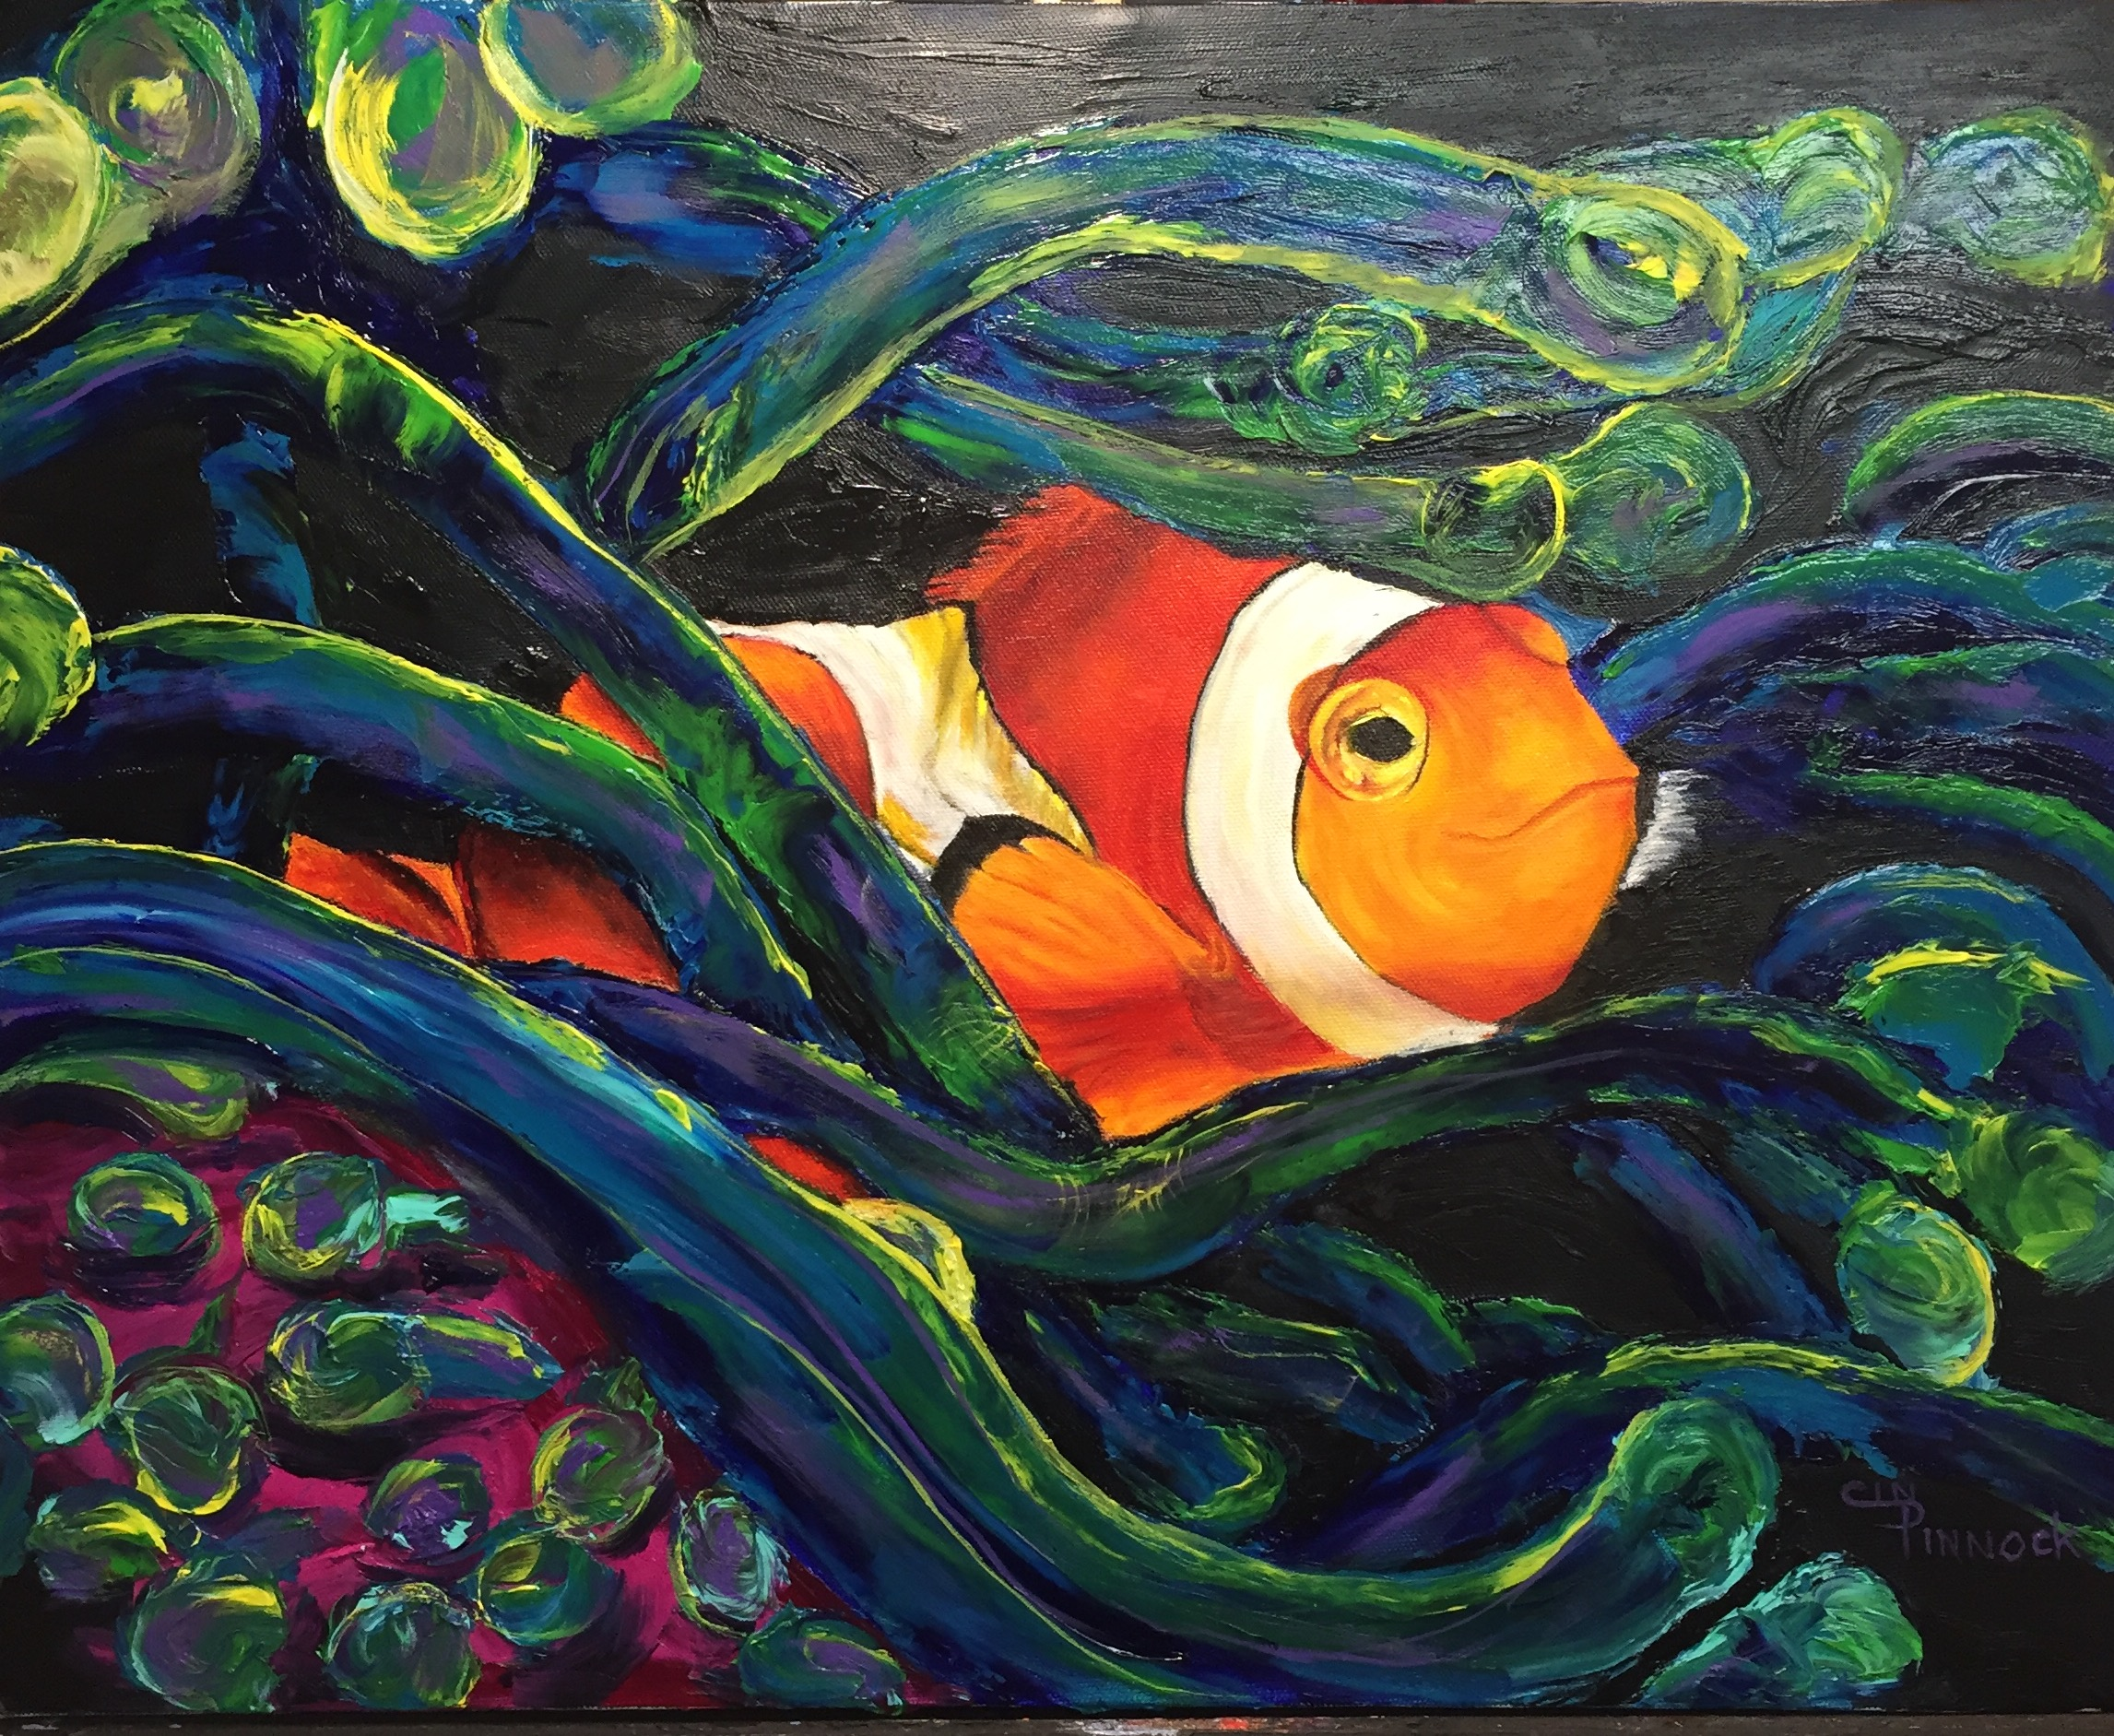 Cindy pinnock artwork clown fish original painting oil for Sea life paintings artists